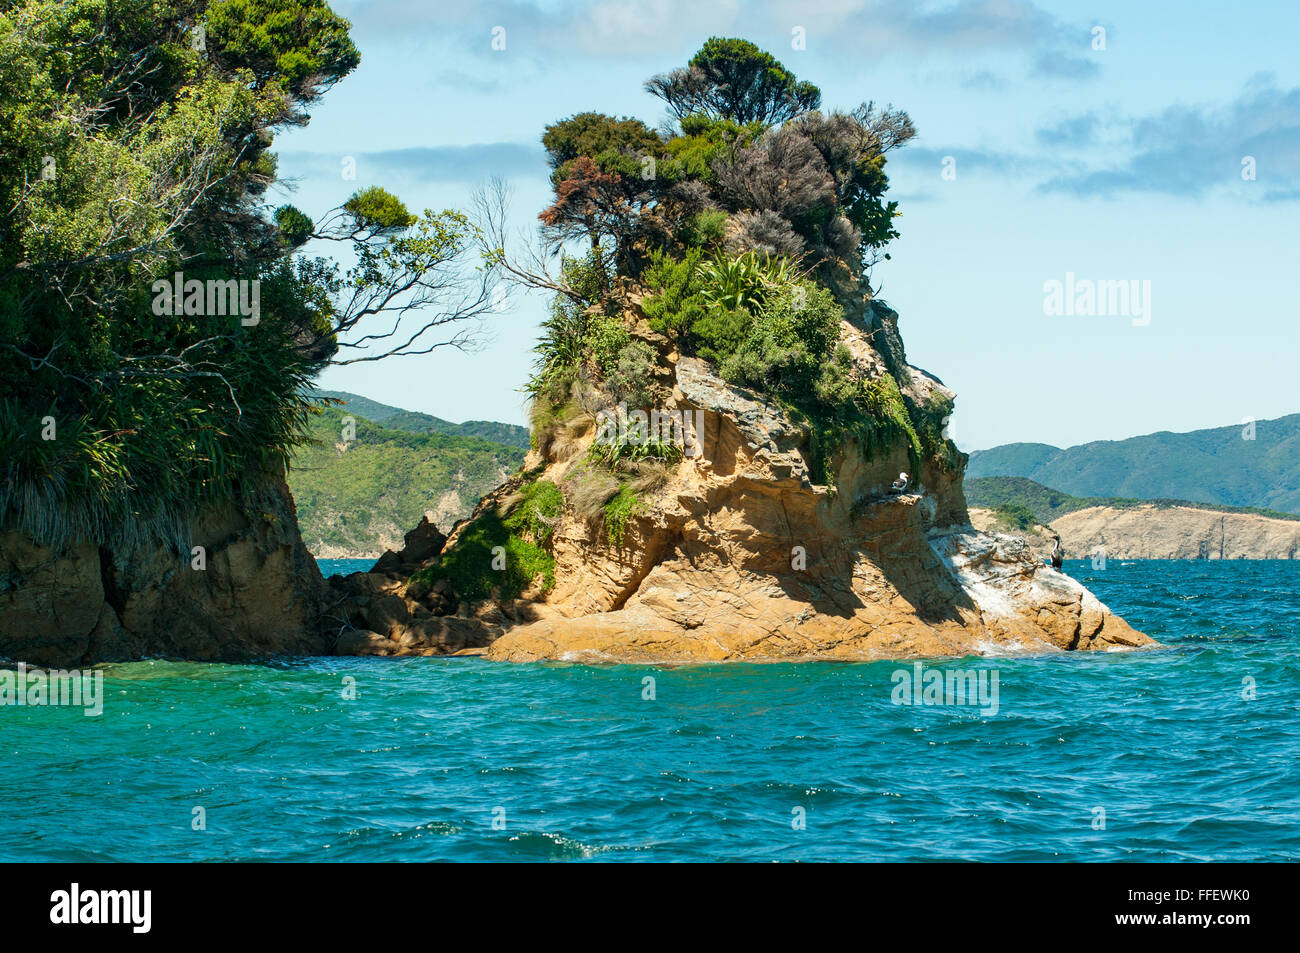 Headland near Resolution Bay, Marlborough Sound, New Zealand - Stock Image